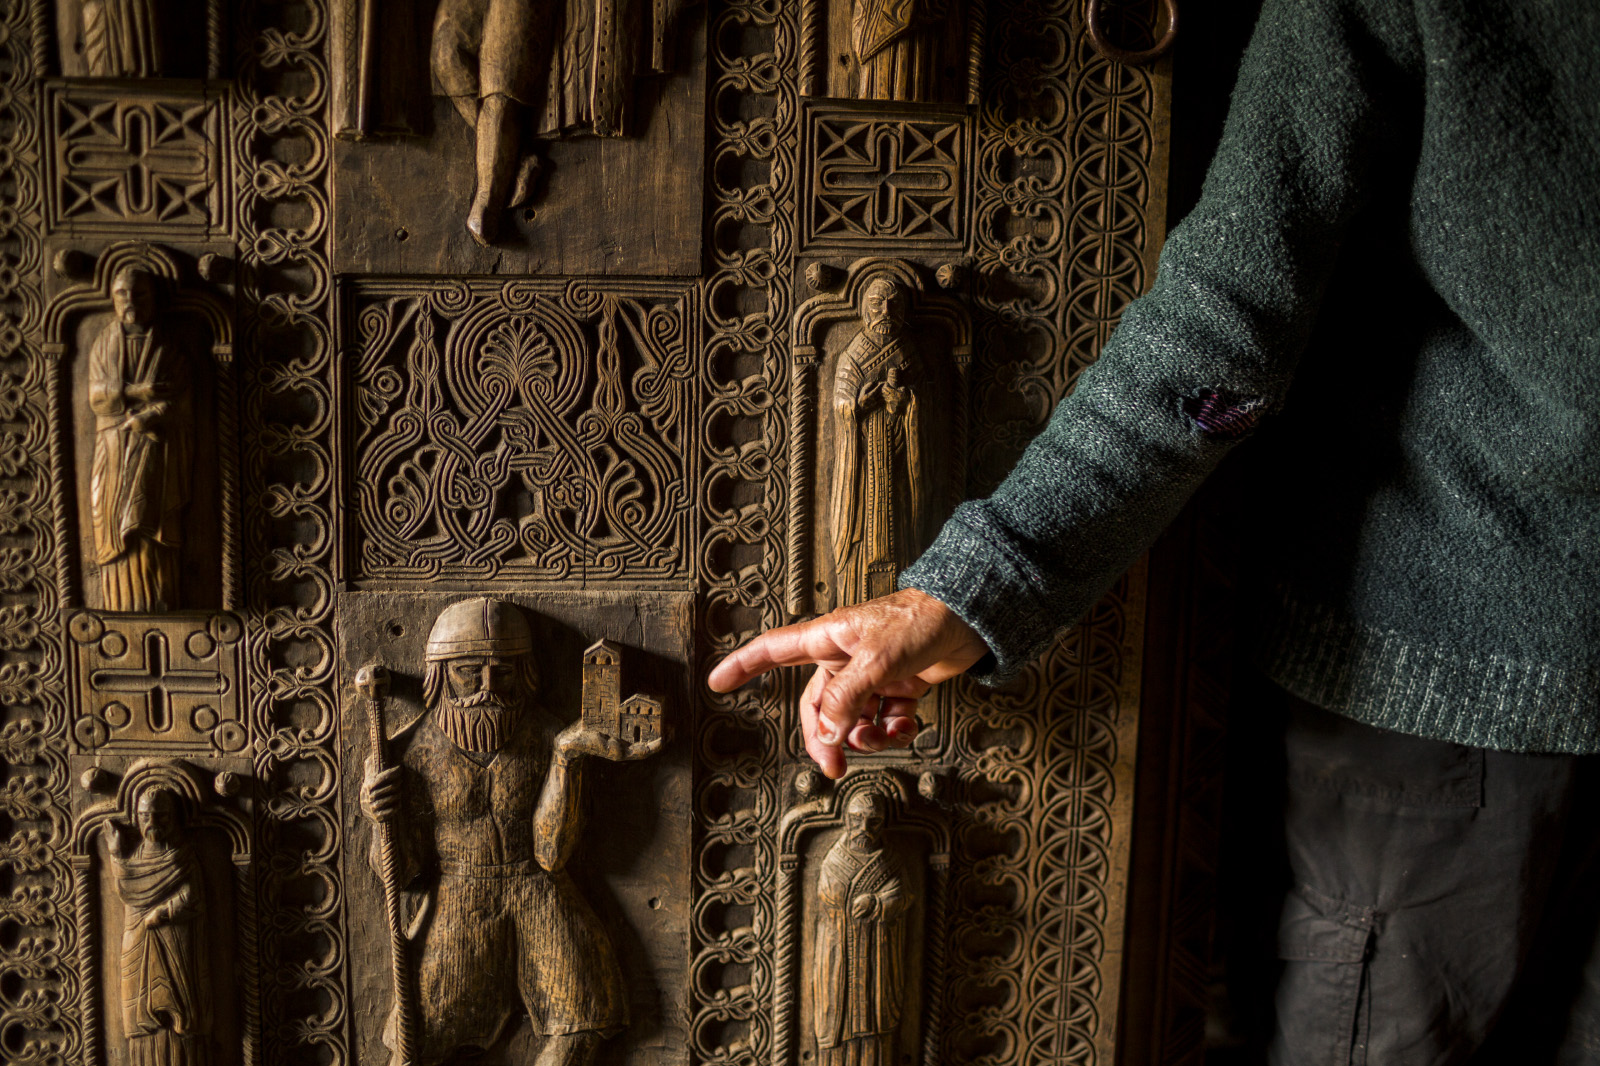 Nijaradze shows a door made by her great grandfather in the village of Ushguli, Svanetia, Georgia.The Svans (Georgian: სვანი, Svani) are an ethnic subgroup of the Georgians (Kartvelians) living mostly in Svaneti, a region in northwest Georgia. They speak the Svan language and are mostly bilingual also in Georgian. Both these languages belong to the Kartvelian (South Caucasian) language family. In the pre-1930 Soviet census, the Svans were afforded their own {quote}ethnic group{quote} (natsional'nost) category.